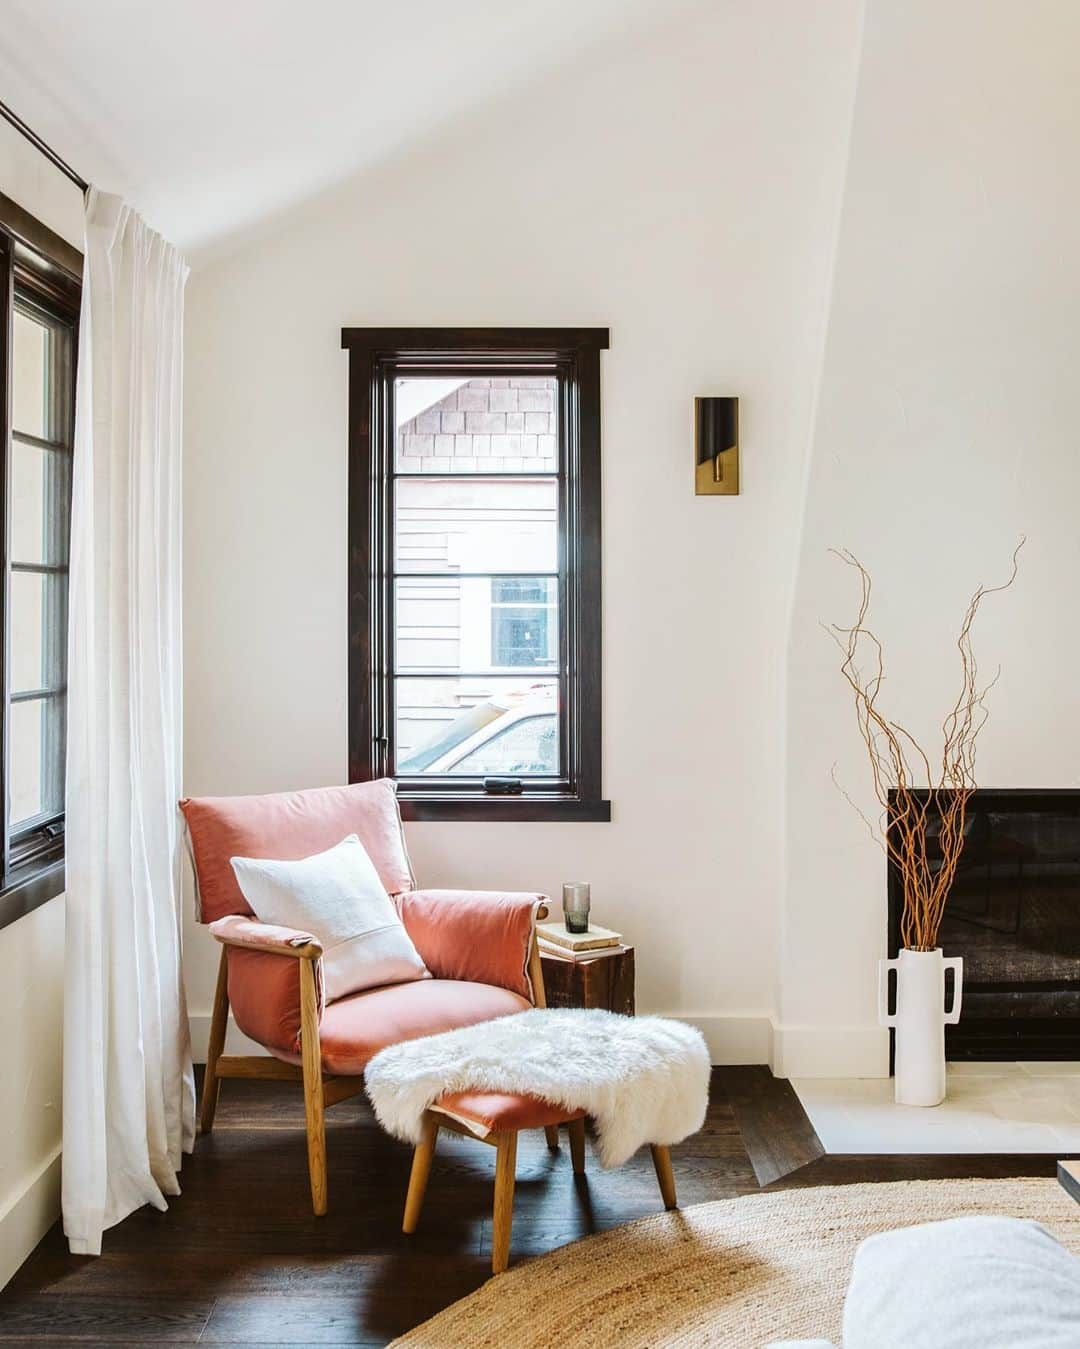 corner of living room with black casement window and red upholstered chair